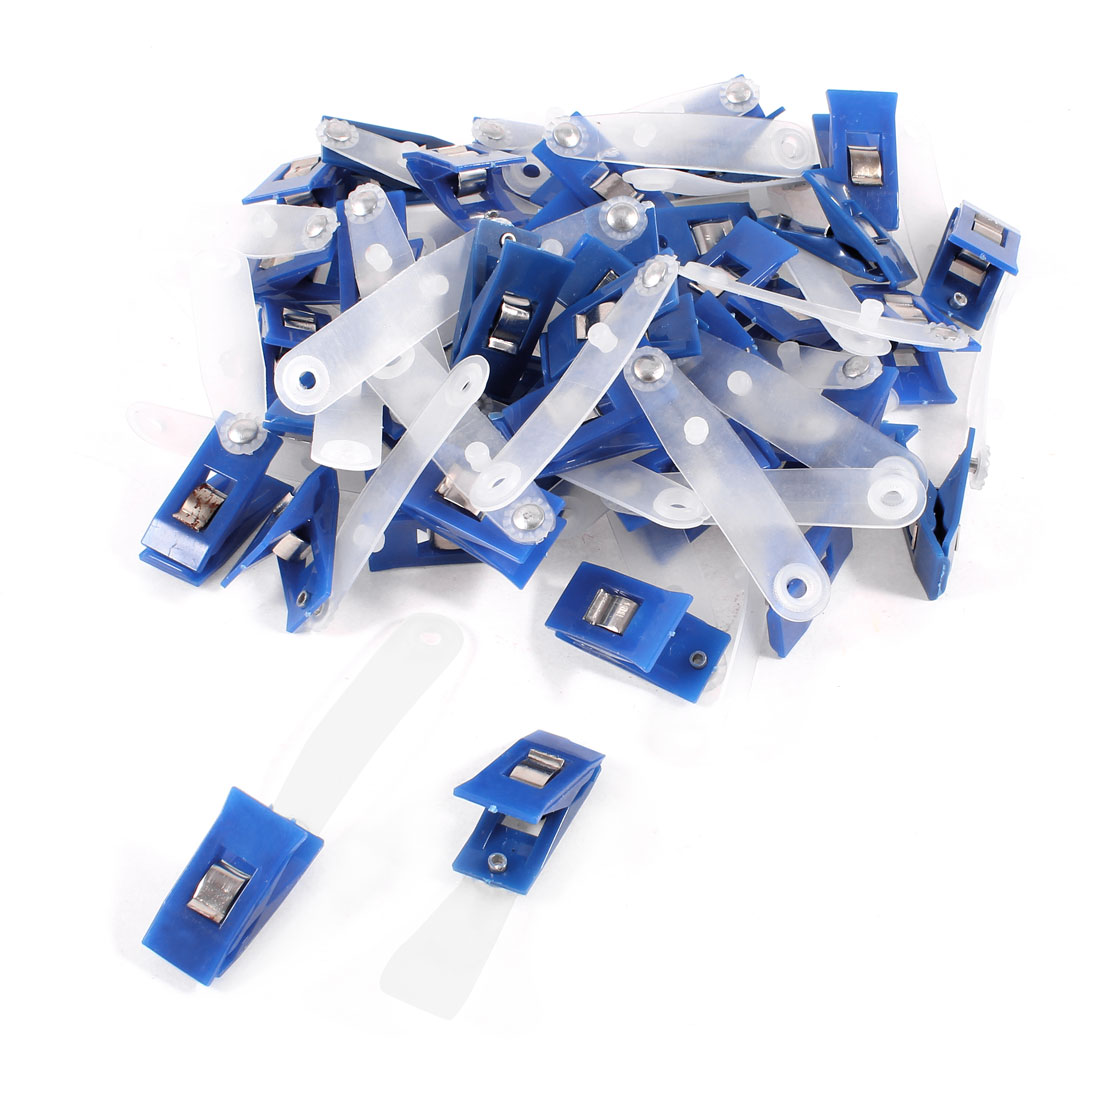 40 Pcs Plastic ID Card Holder Name Badge Clips Fastener Blue